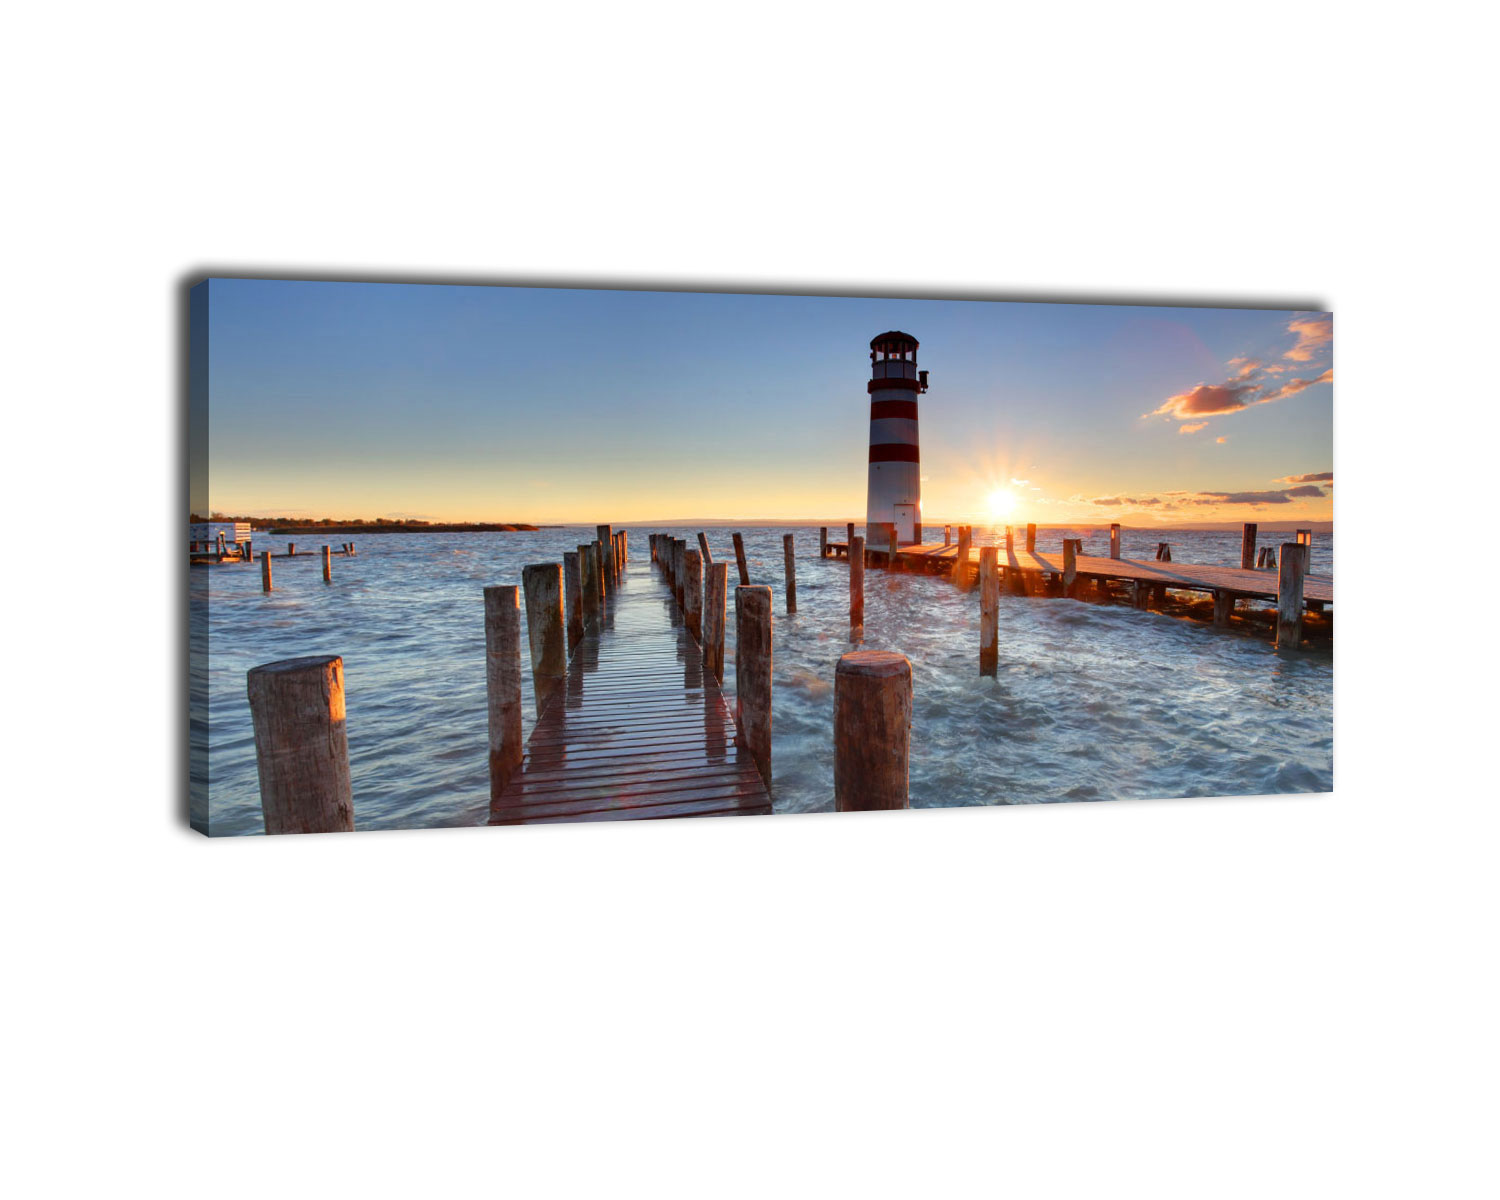 leinwandbild leuchtturm mit pier bild auf leinwand kunstdruck eur 9 95 picclick de. Black Bedroom Furniture Sets. Home Design Ideas